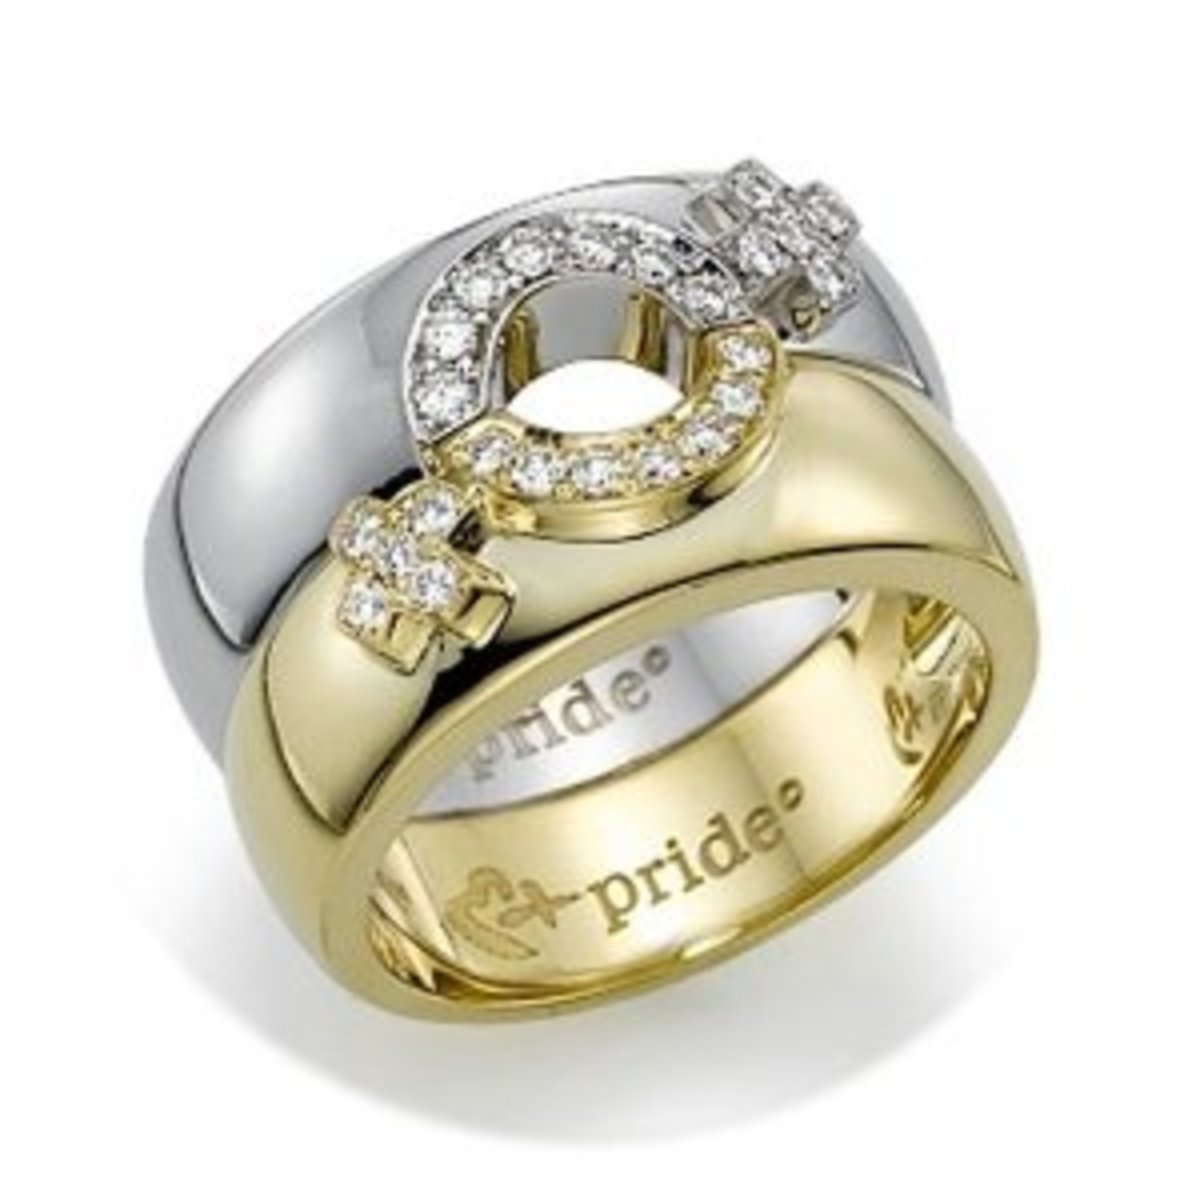 18K yellow and 18K White Gold ring set with diamond lesbian insignia.